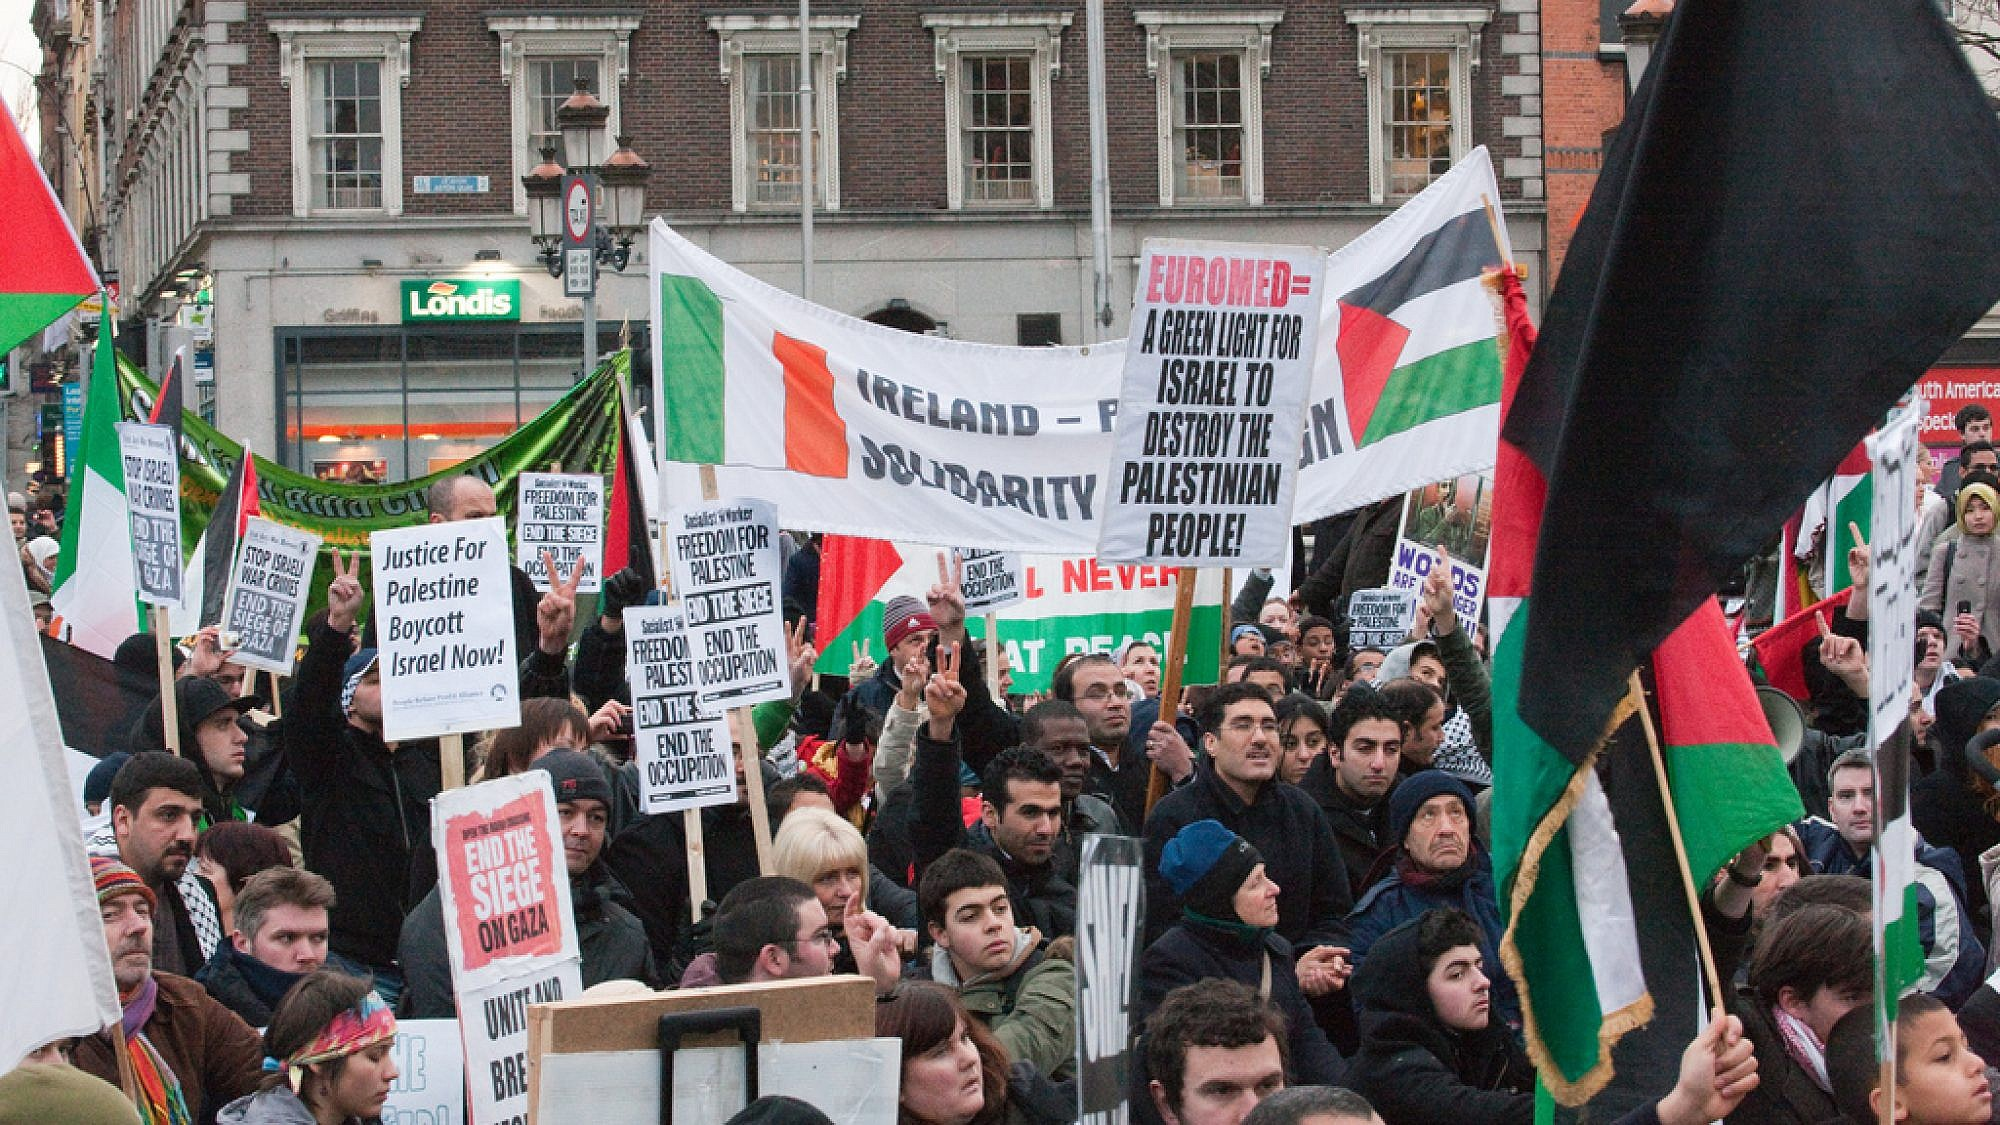 Pro-Palestinian protesters near the Irish Parliament in Dublin at a rally against Israeli air strikes in Gaza in 2009. Credit: William Murphy/Flickr.